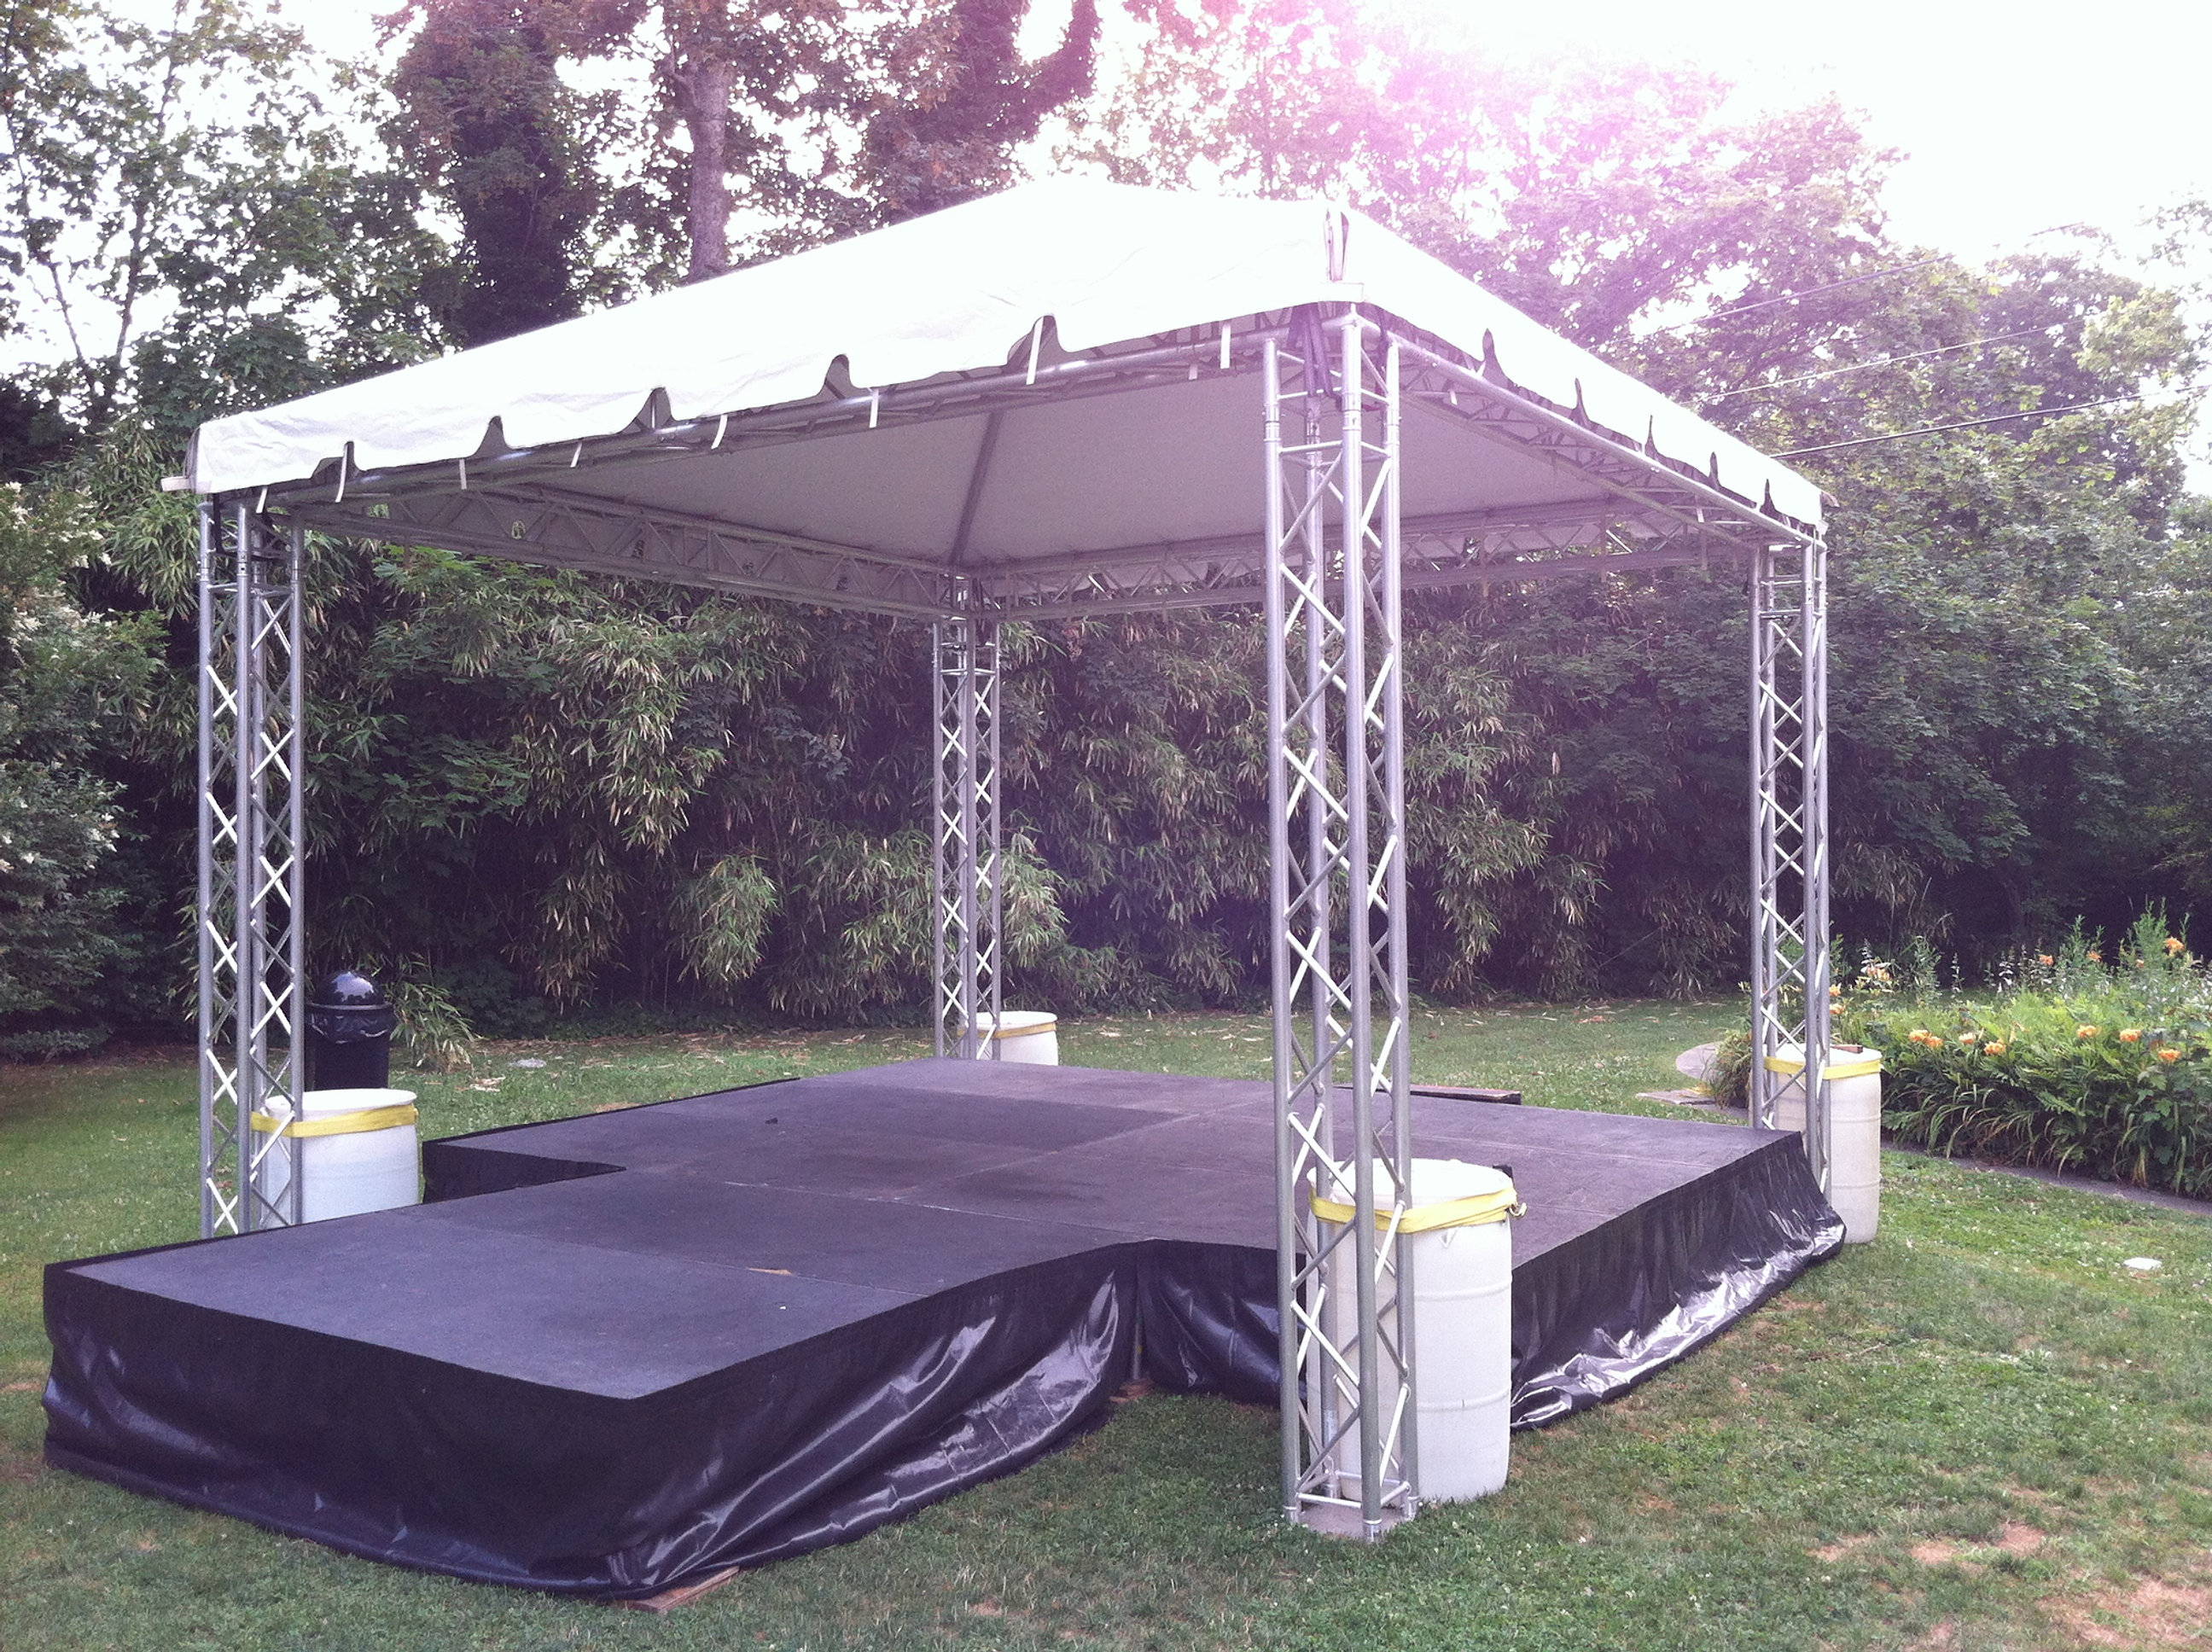 For Sale Is A Used 16x16 Stage Deck With Global Truss System And Fiesta Frame Tent Top This Designed Small Events Where Quick